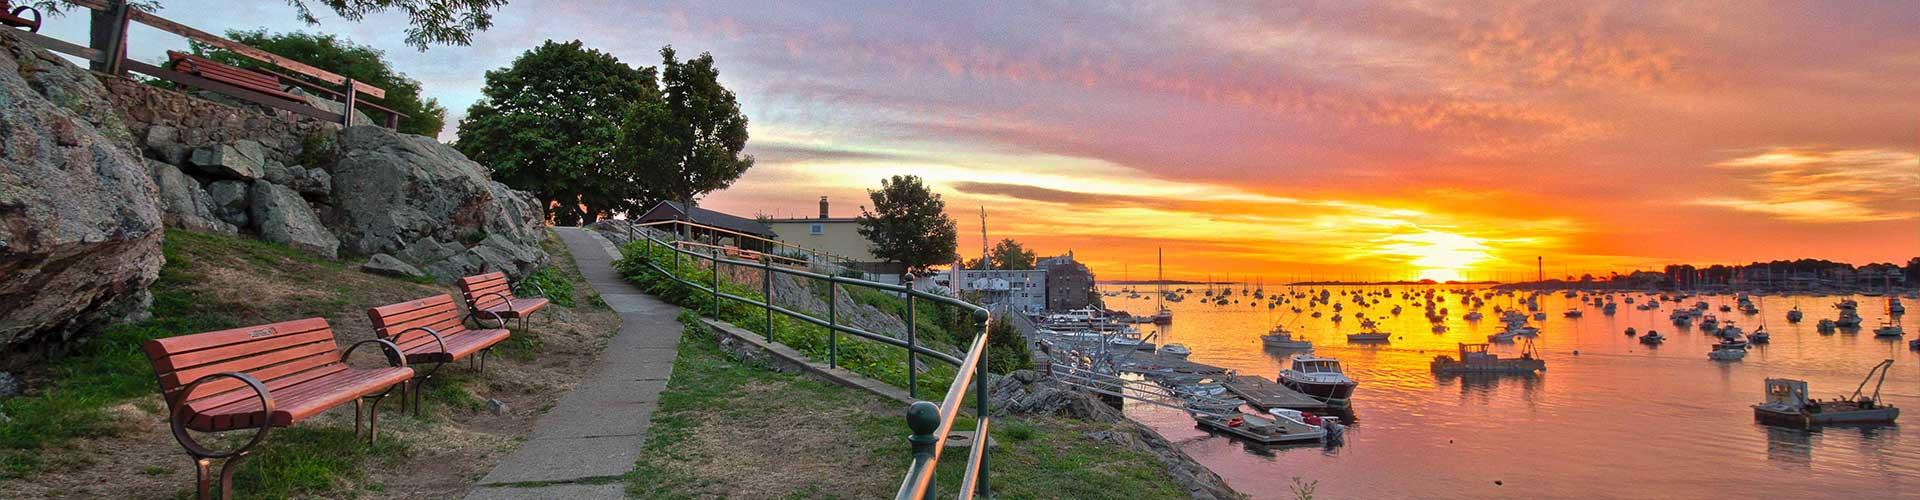 Marblehead First Sunrise at Hammond Park by Mike Porter